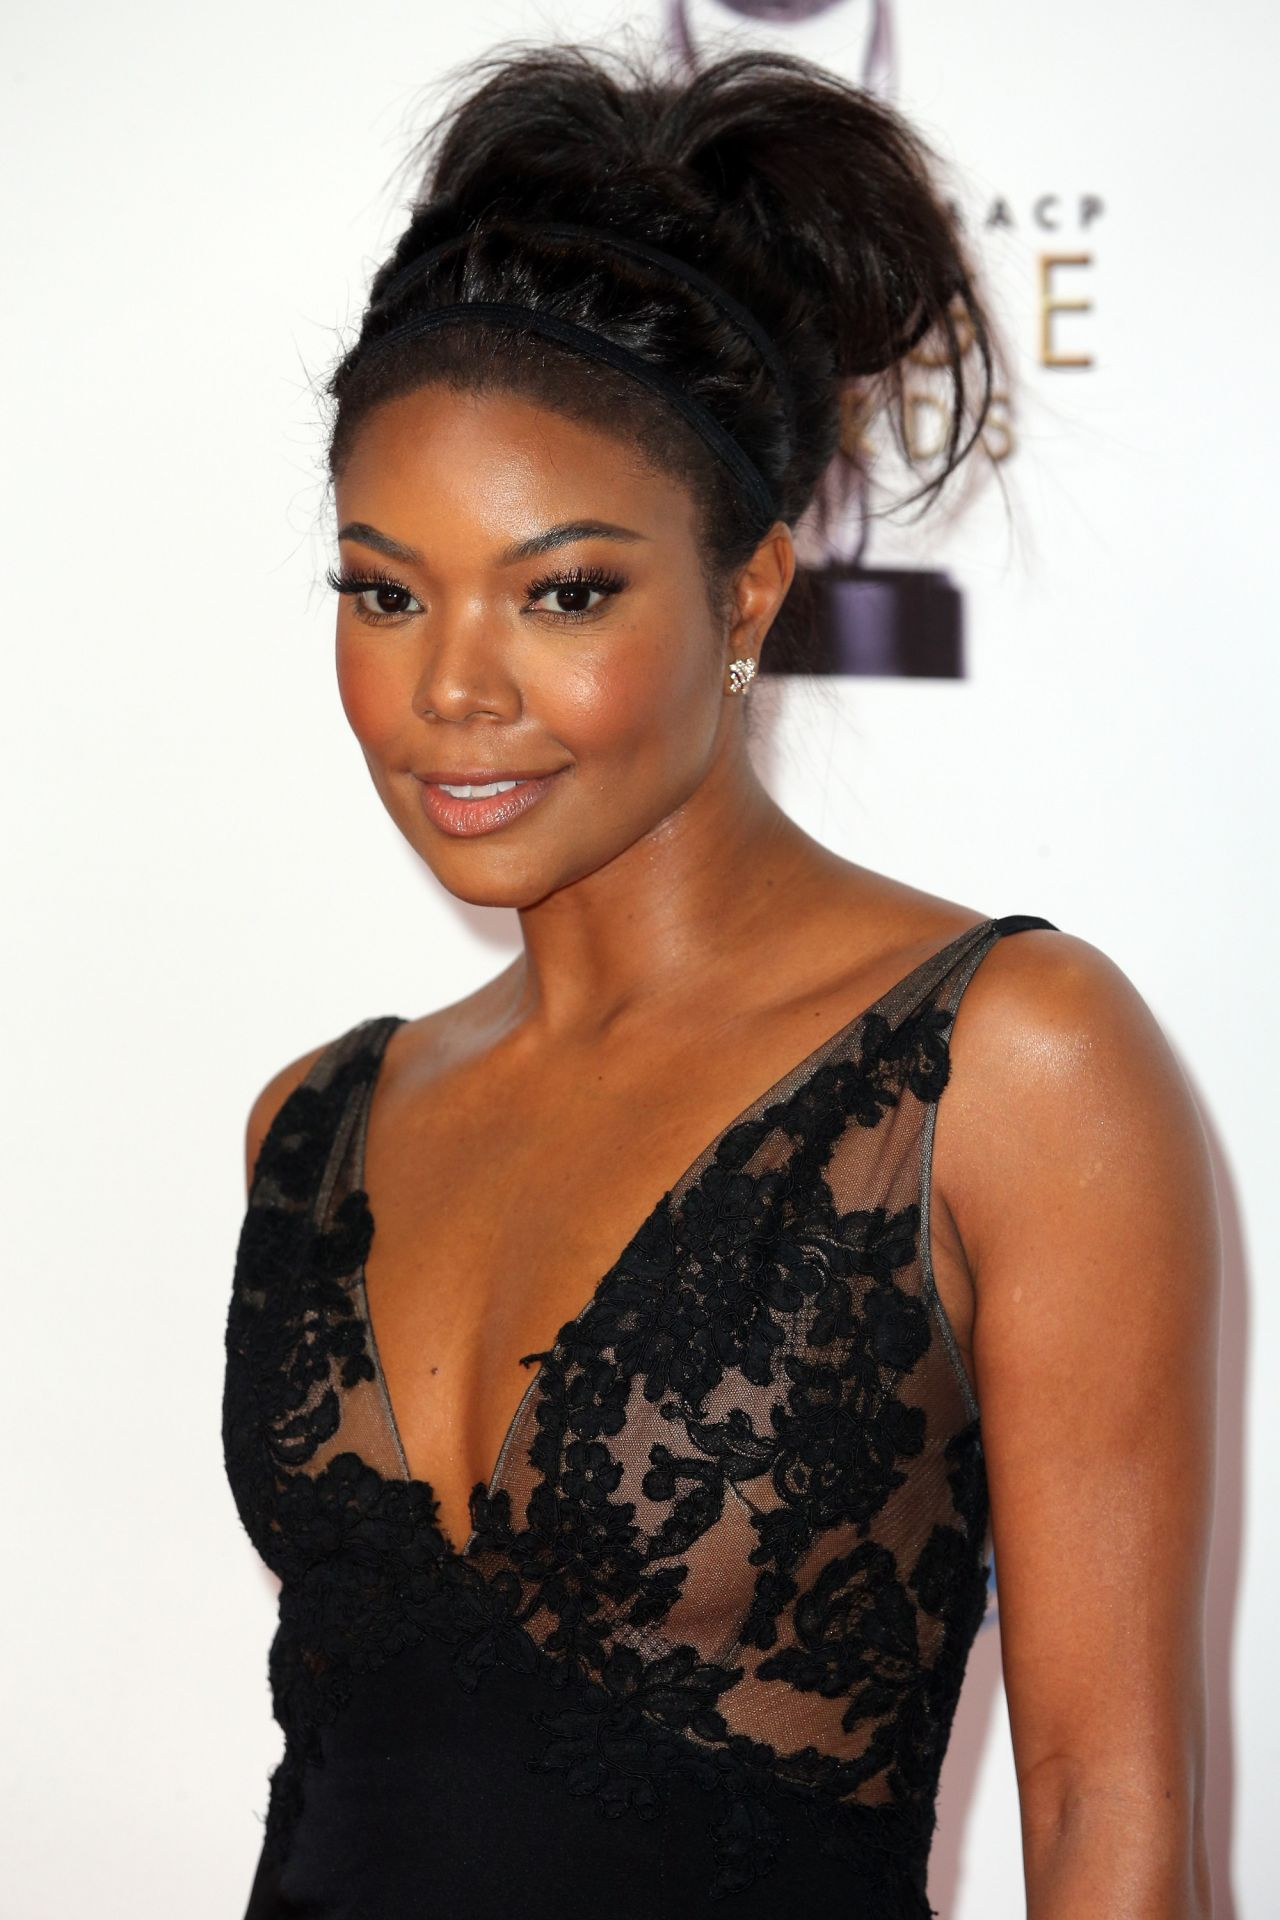 gabrielle-union-naacp-image-awards-2016-presented-by-tv-one-in-pasadena-ca-6